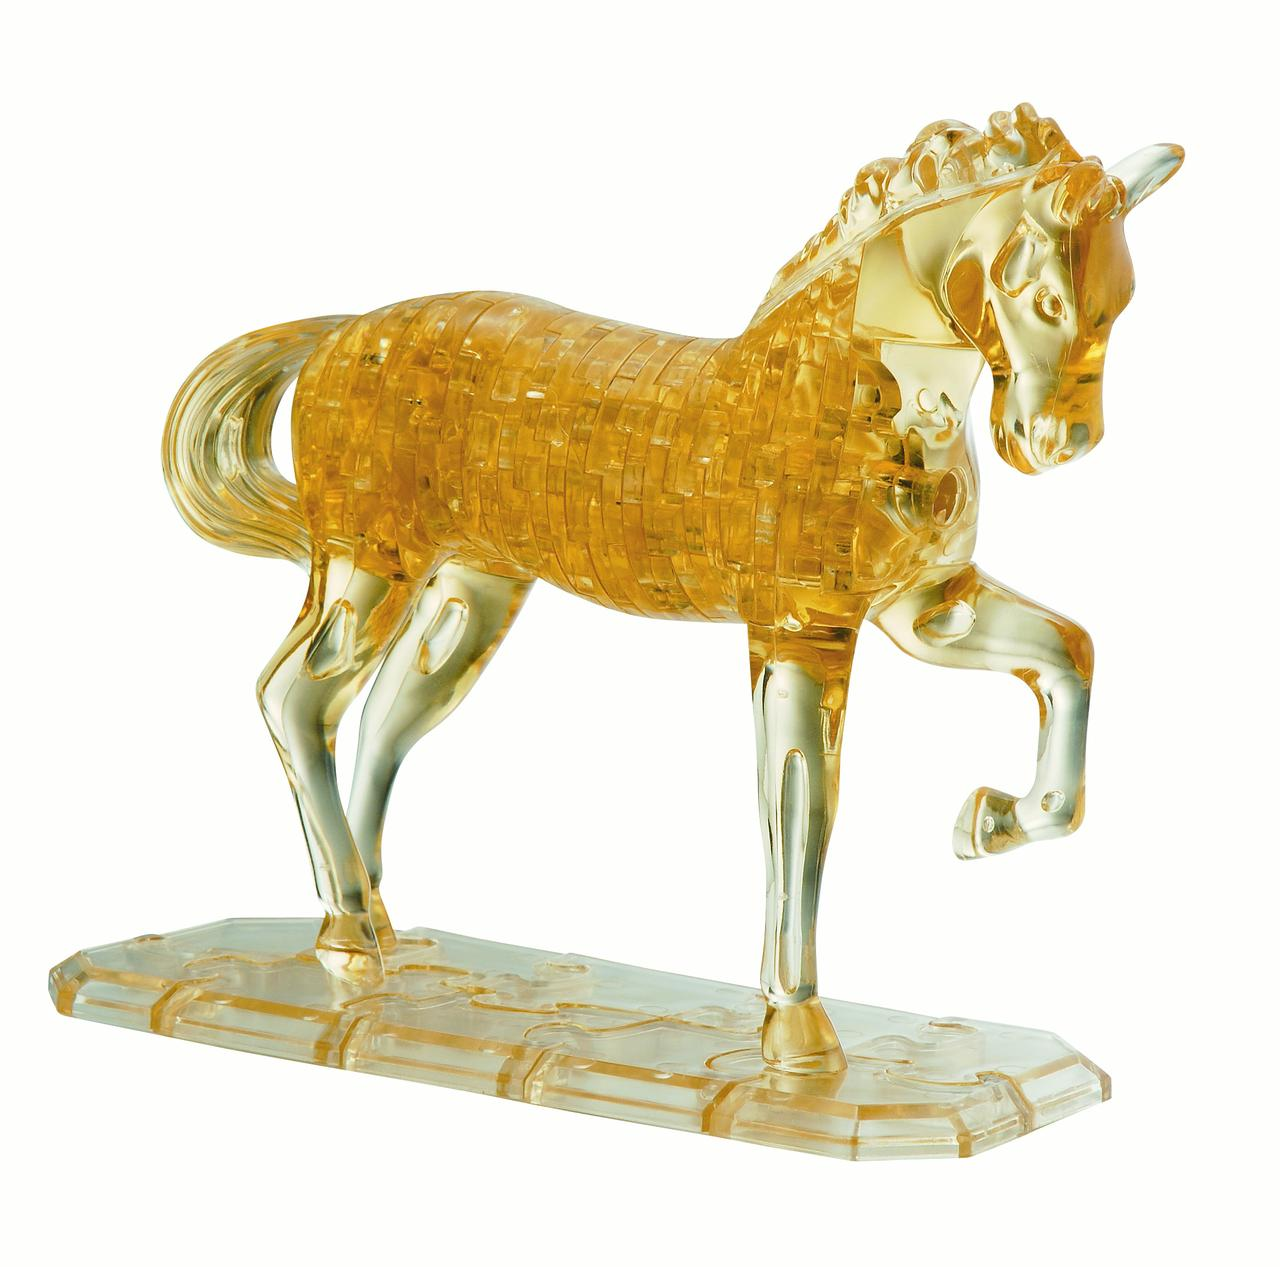 Deluxe 3D Crystal Puzzle Horse by University Games